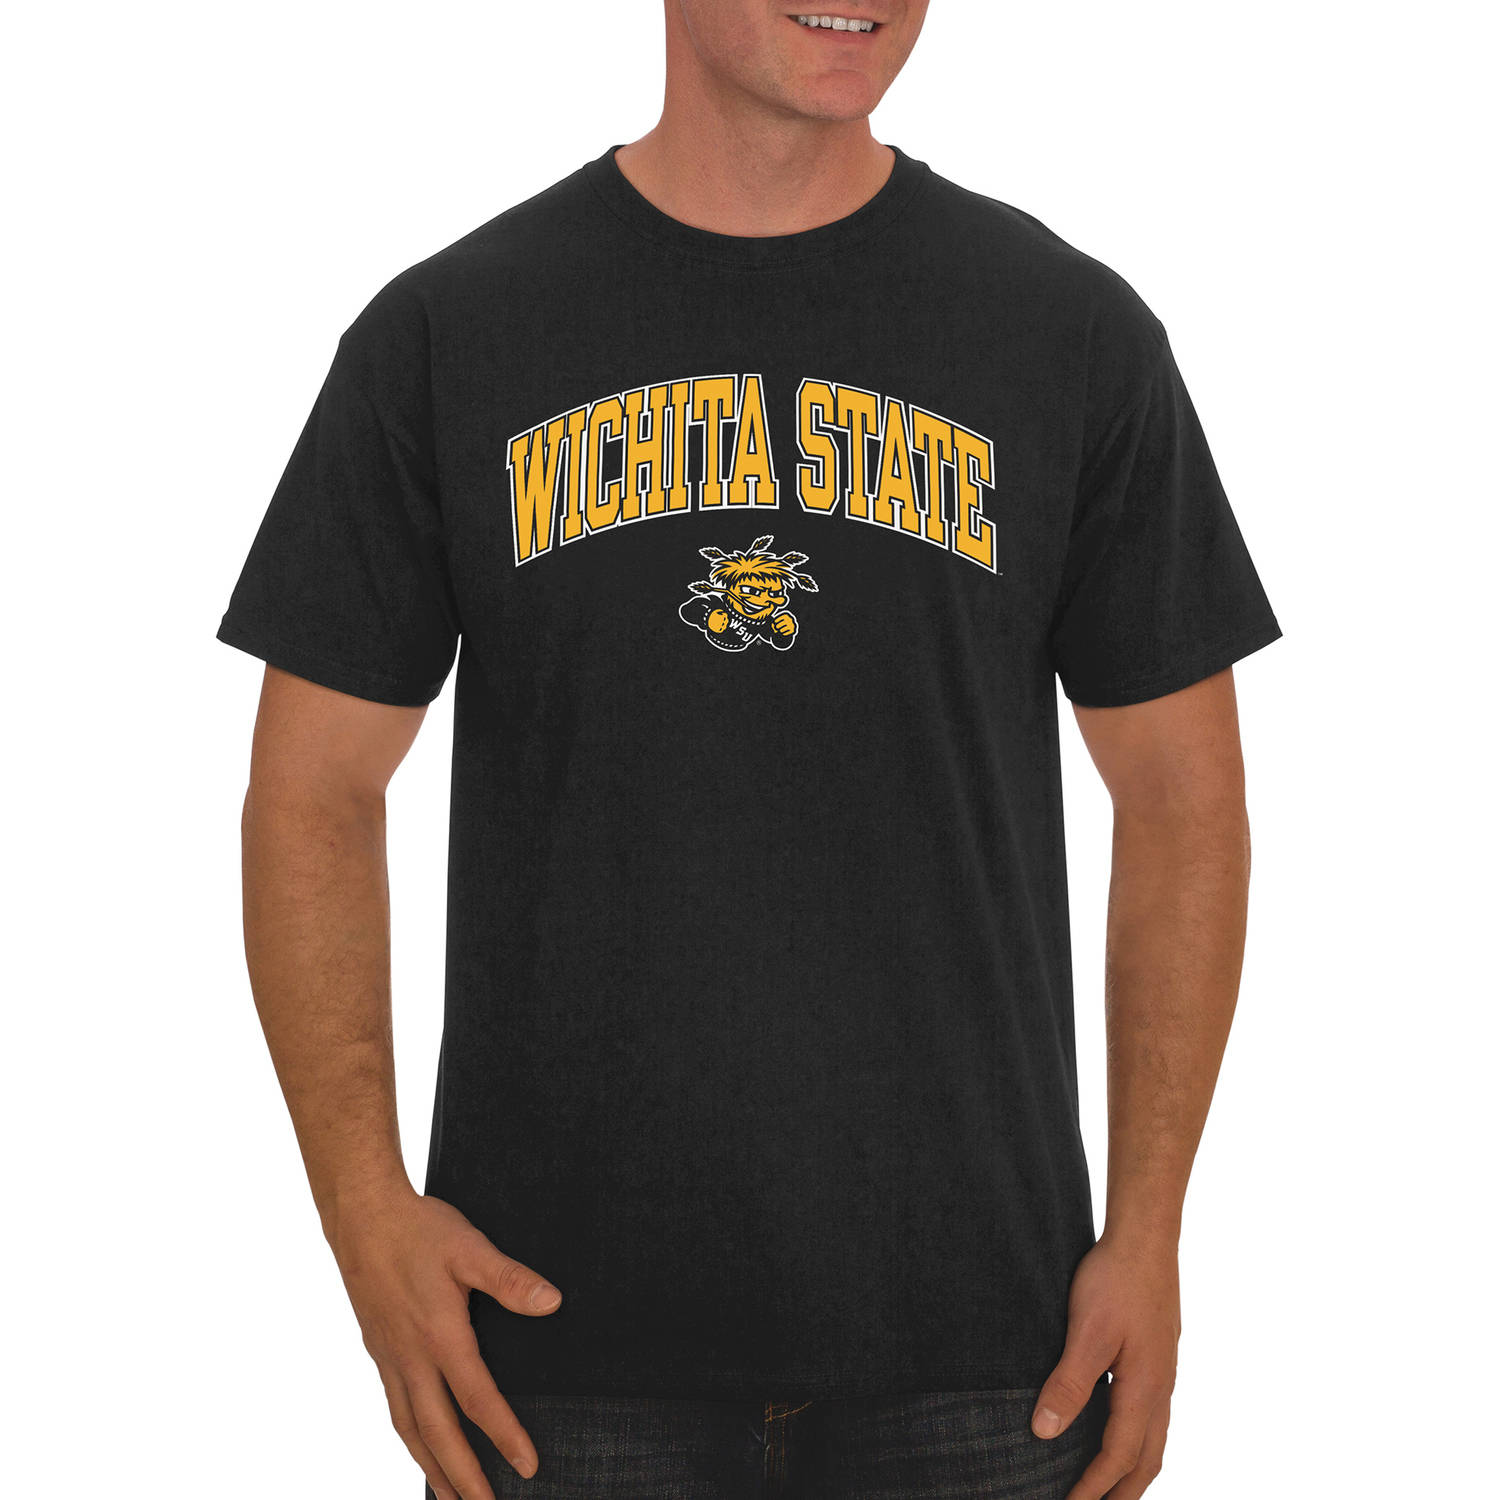 NCAA Wichita State Shockers Men's Classic Cotton T-Shirt